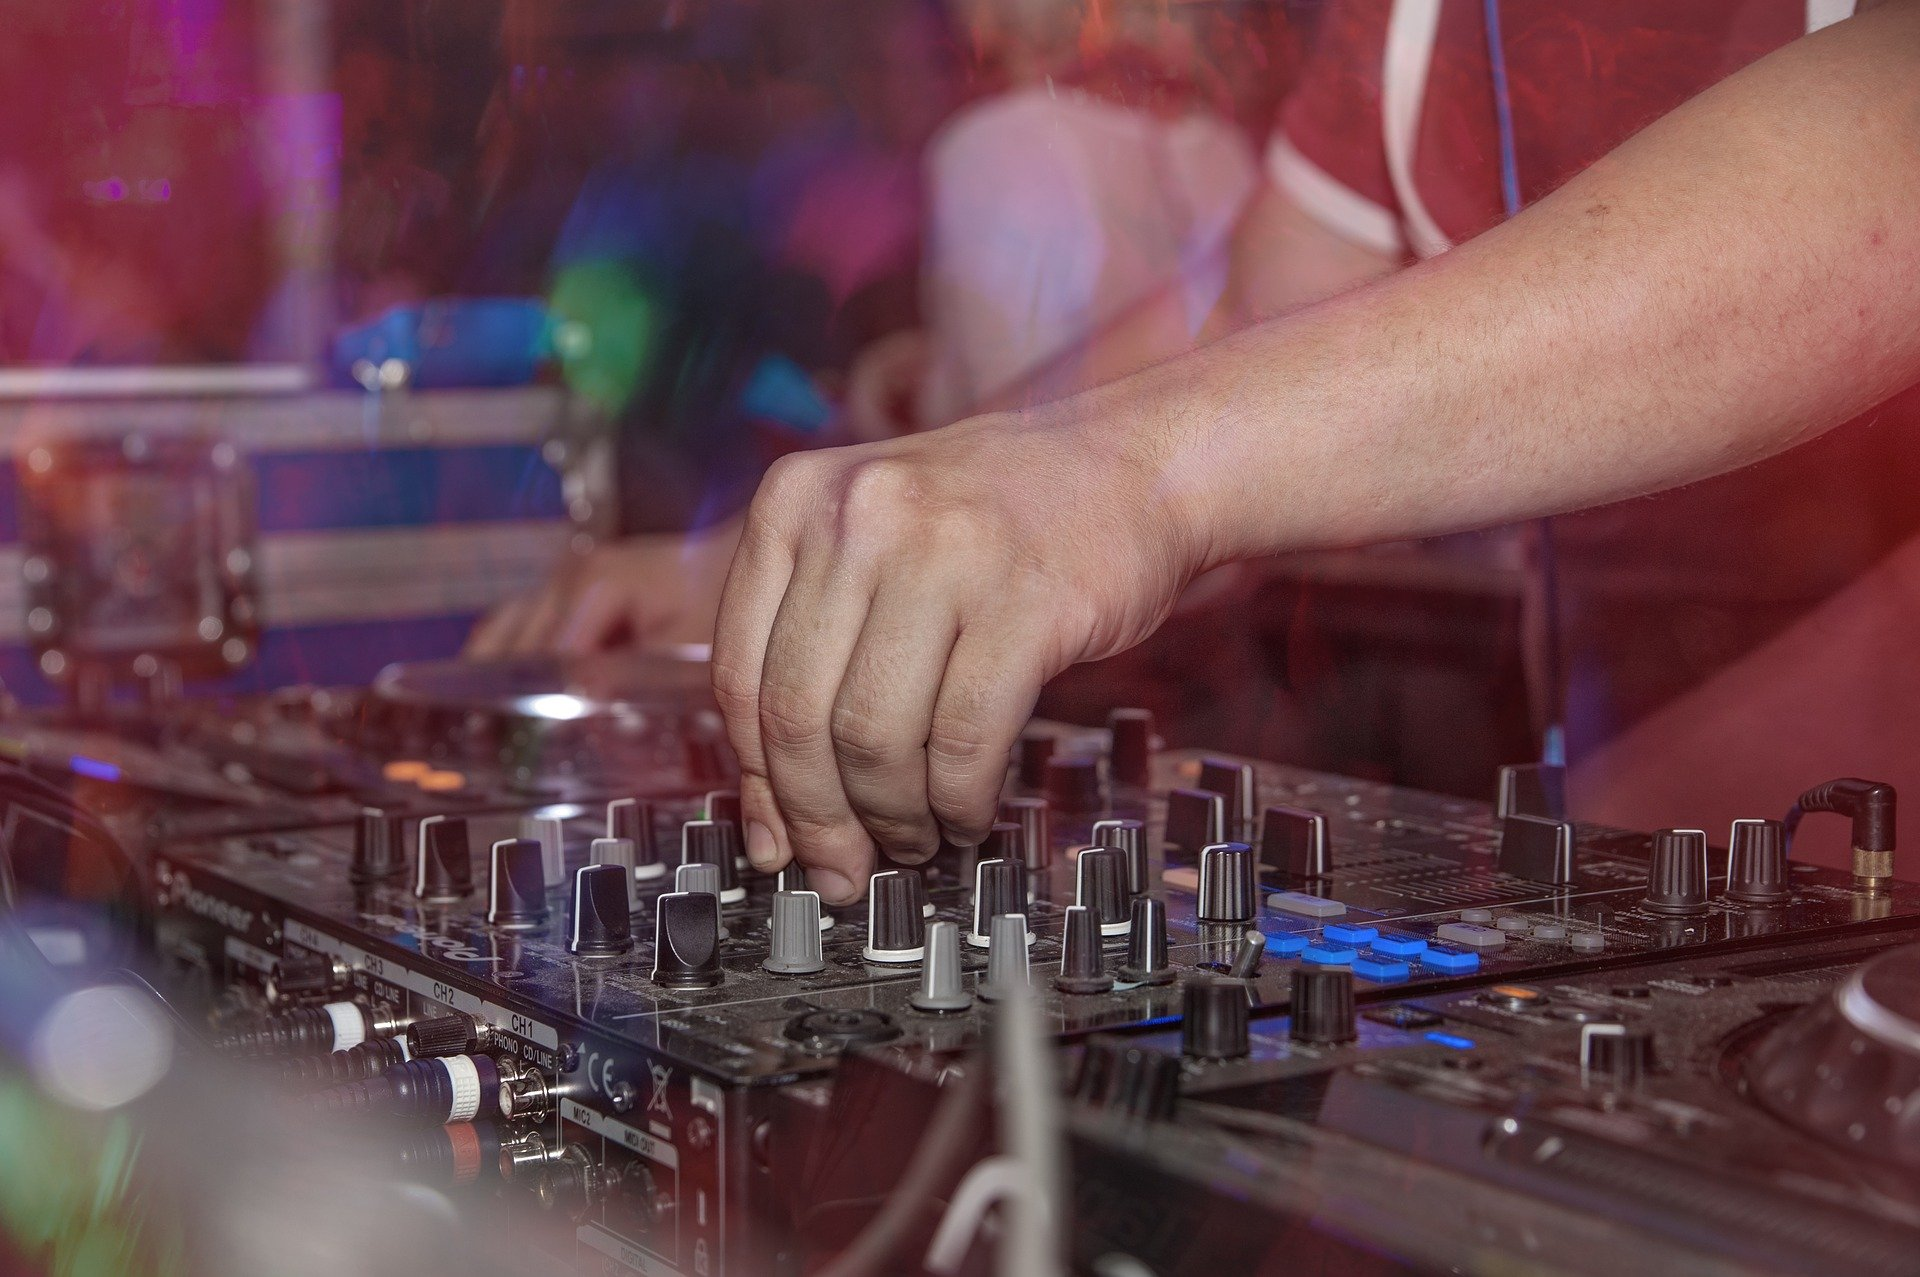 Top 5 DJ Equipment You Need to Have